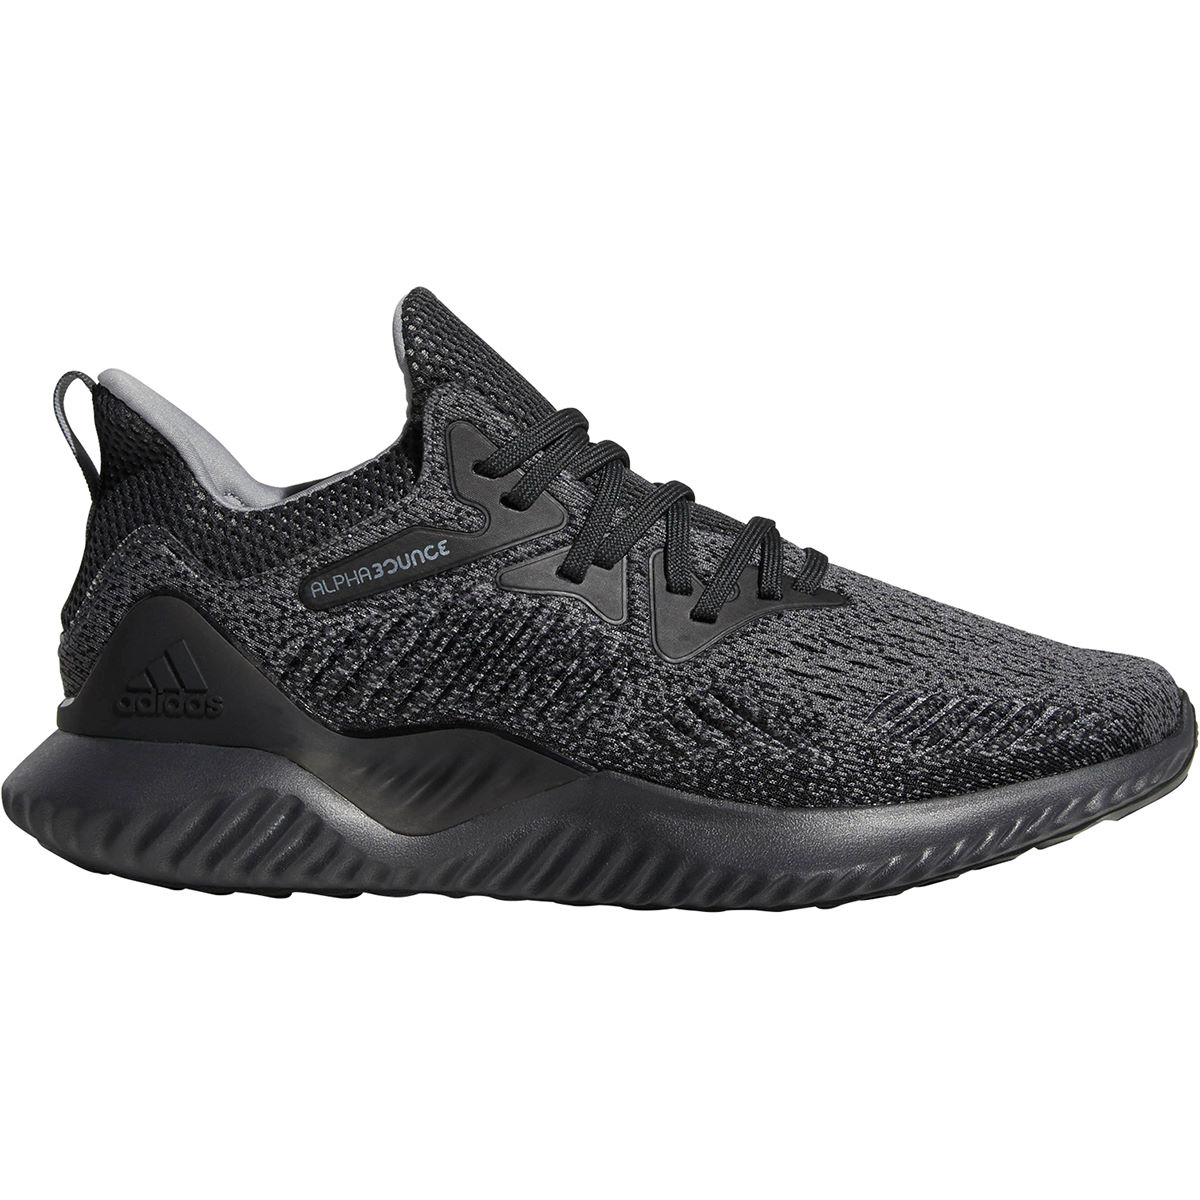 Zapatillas Adidas Alphabounce Beyond - Zapatillas de running